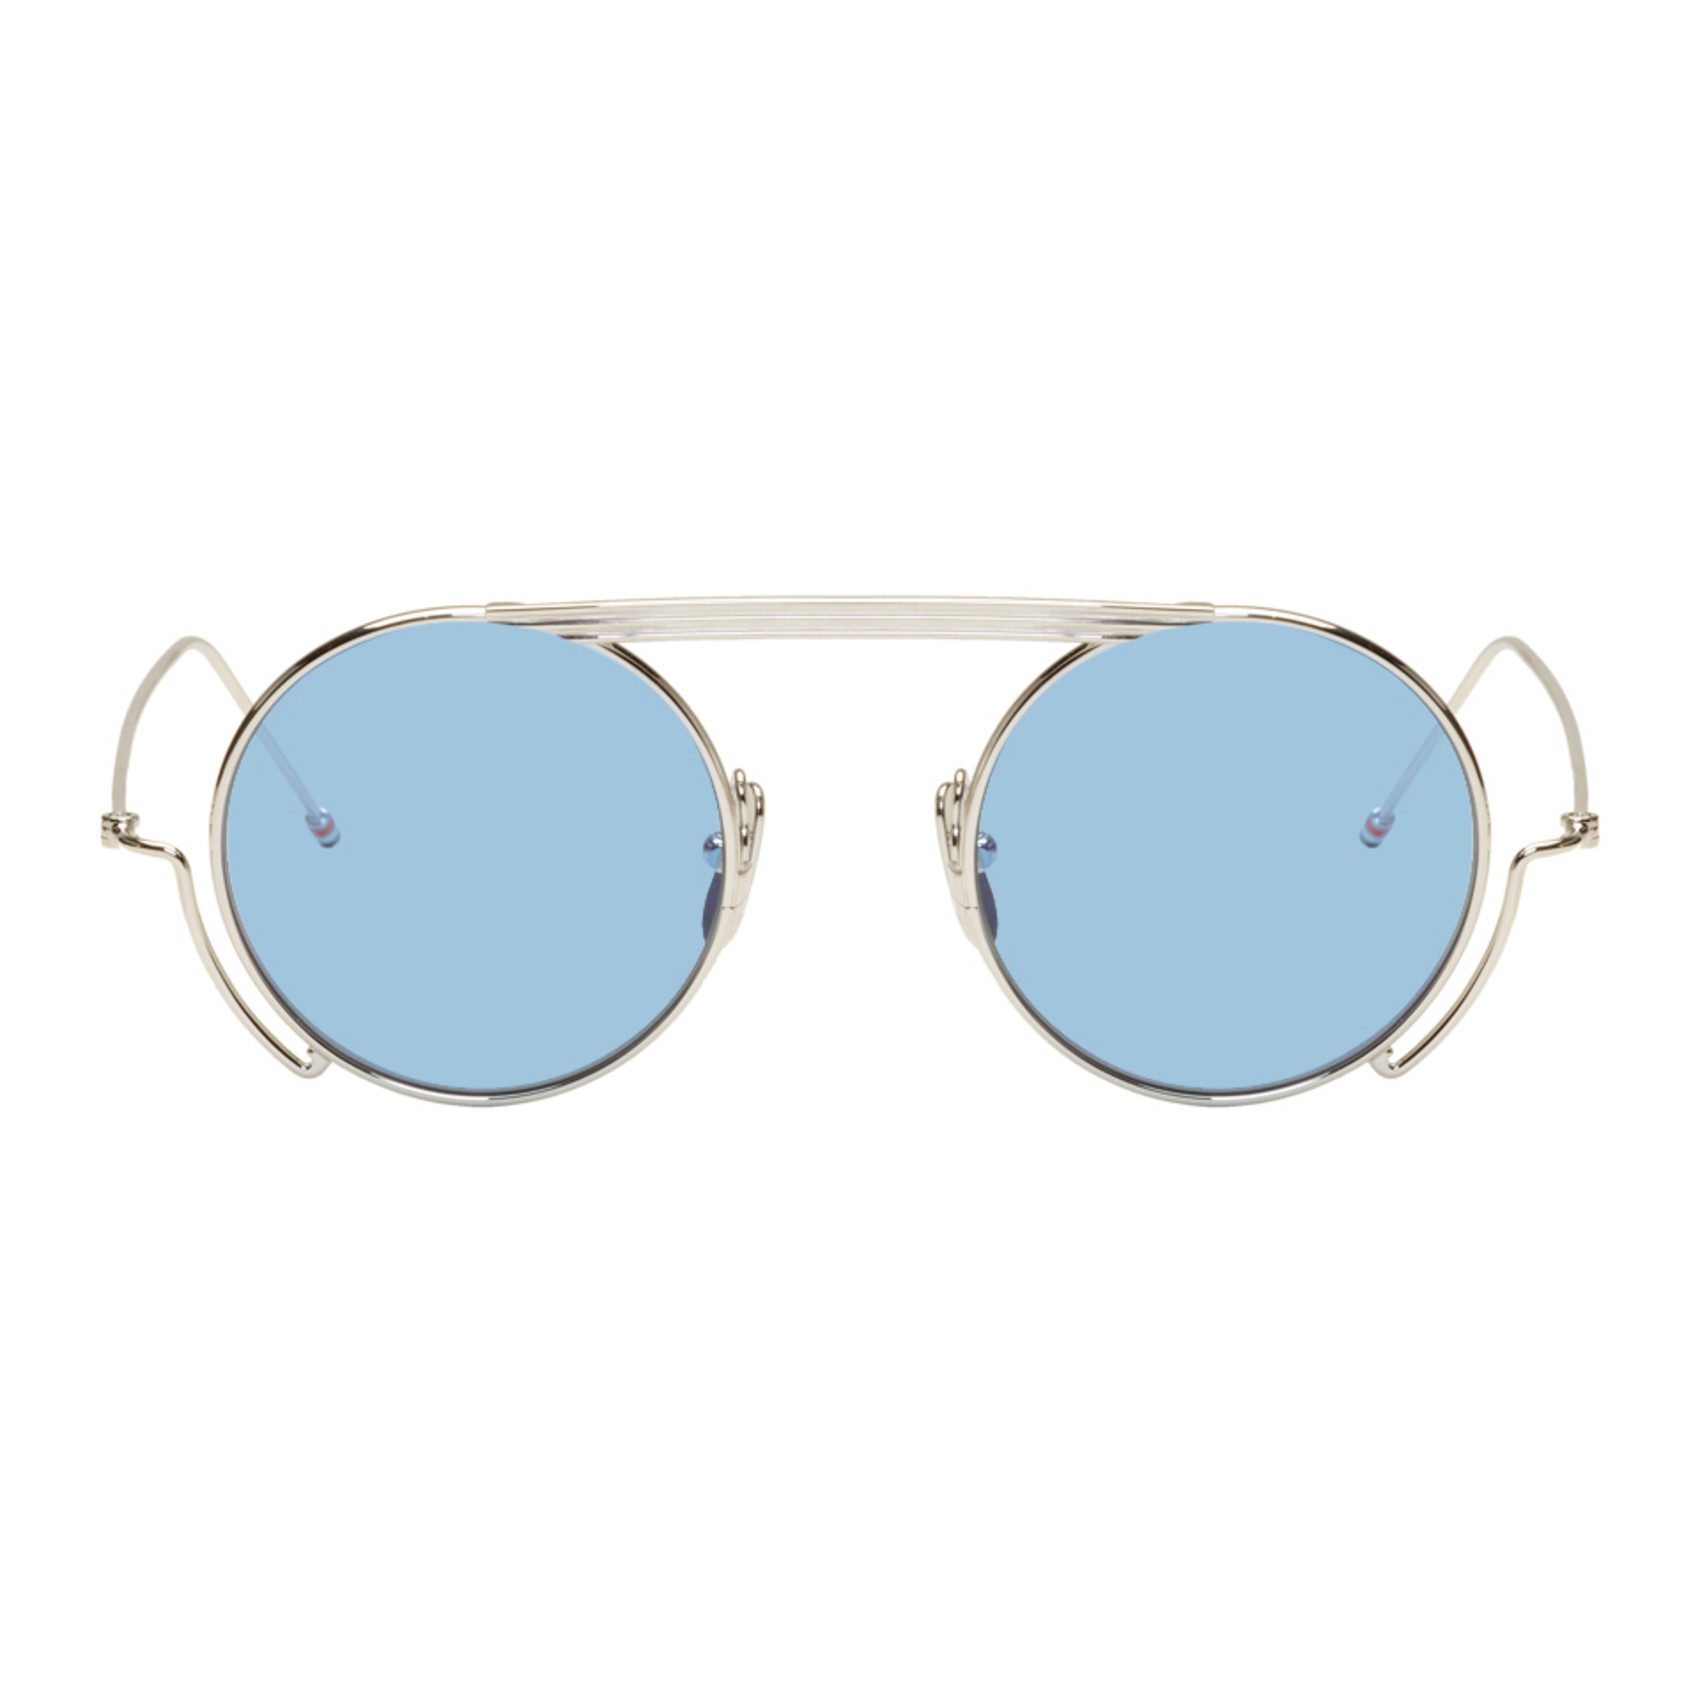 Silver Tb 111 Sunglasses by Thom Browne